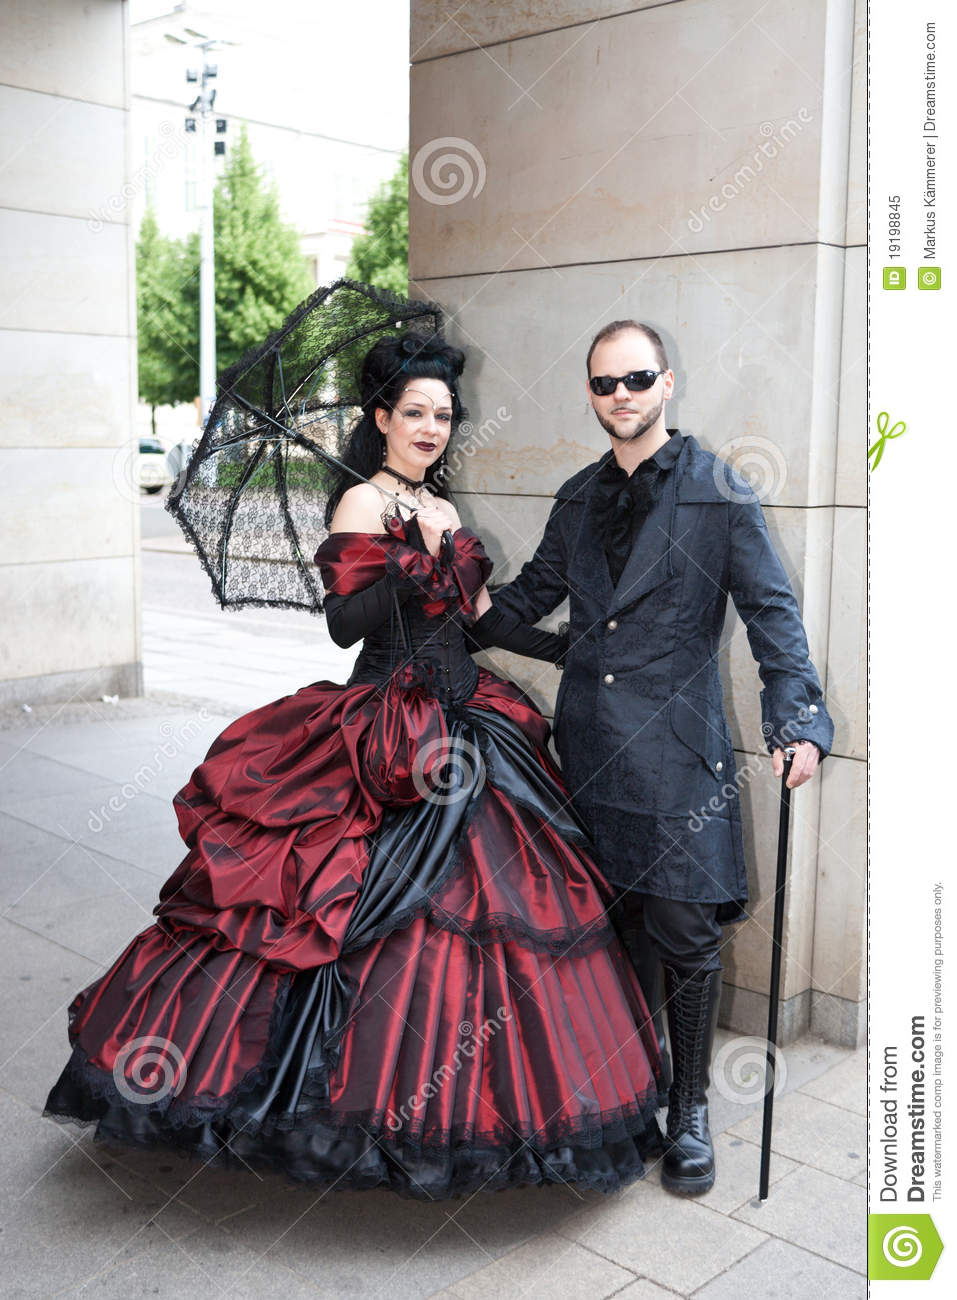 Wallpaper Emo Girl Style Traditional Couple At Wave Gotik Treffen Editorial Image